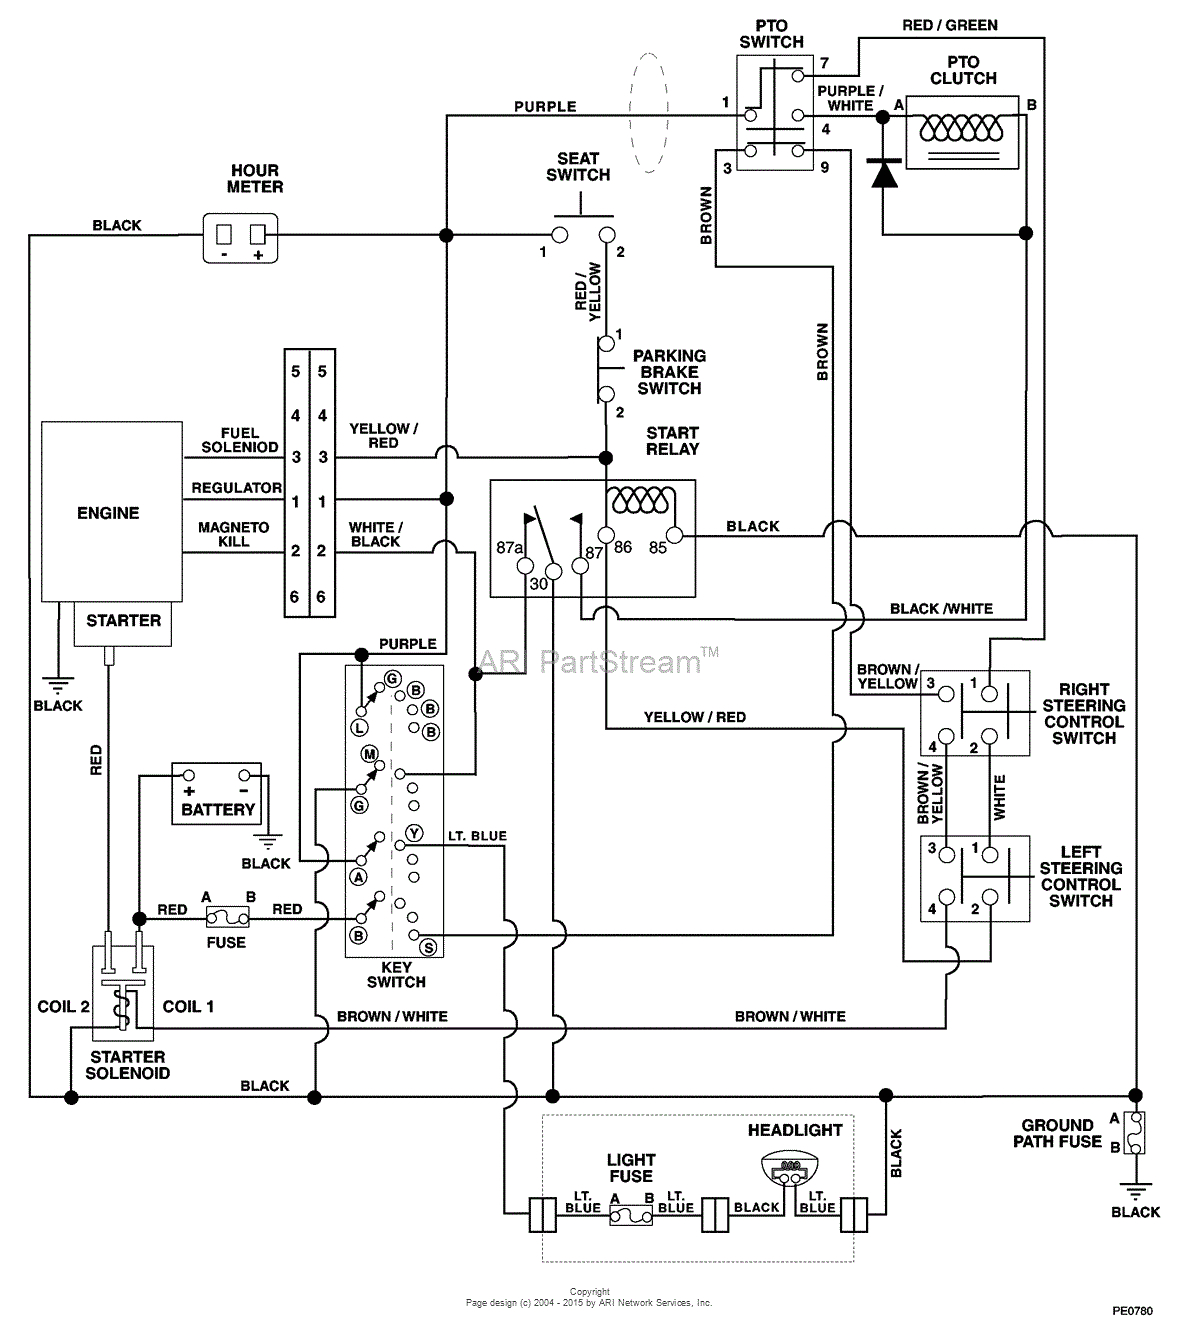 gm windshield wipers and solid state timers schematic wiring gm windshield wipers and solid state timers schematic